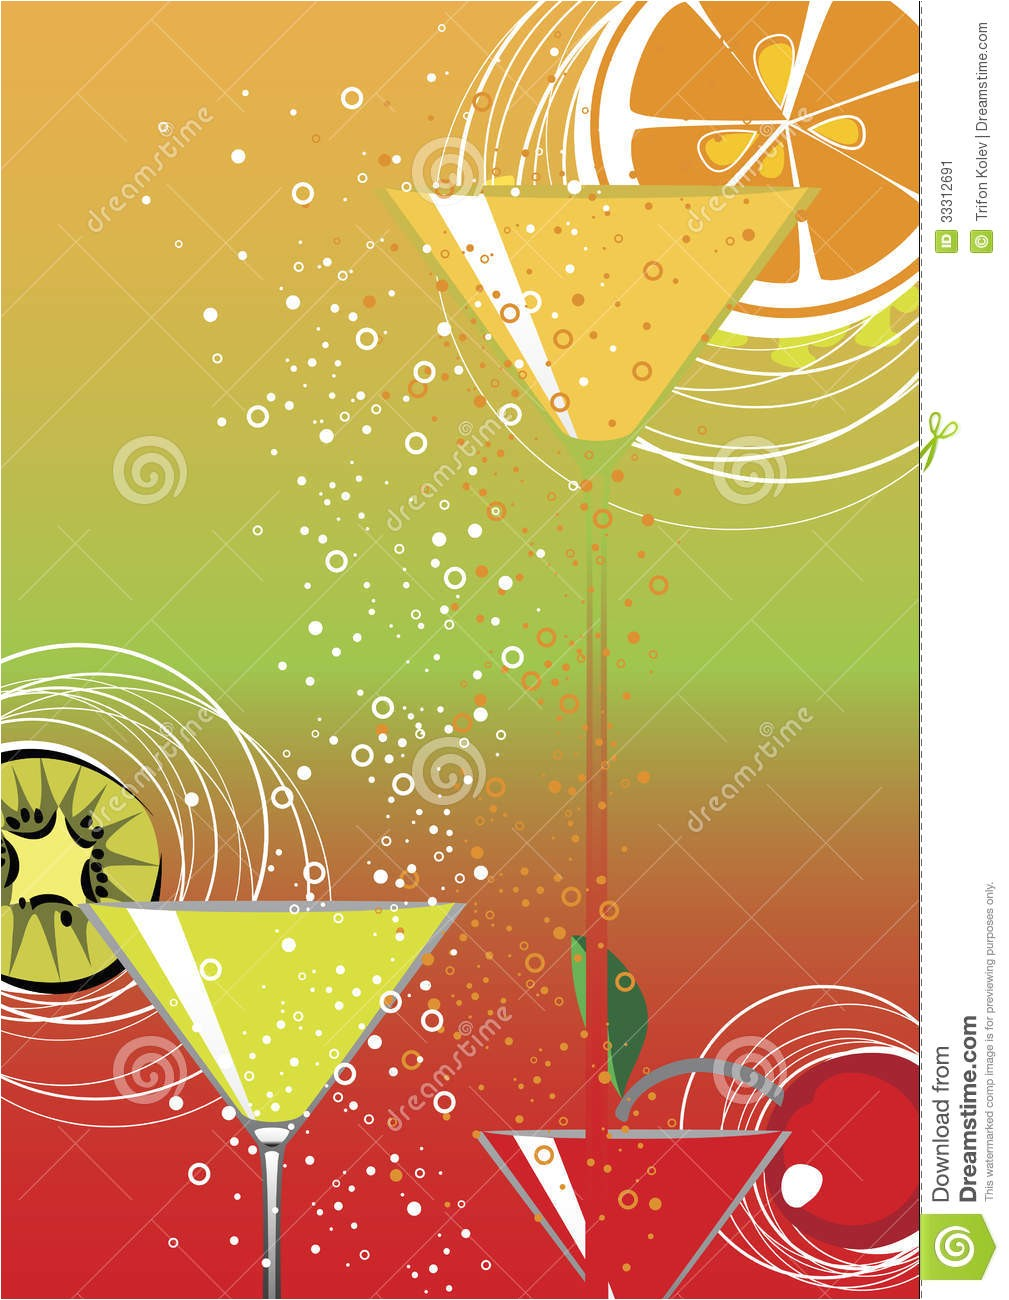 stock image cocktail party colorful vector background image33312691